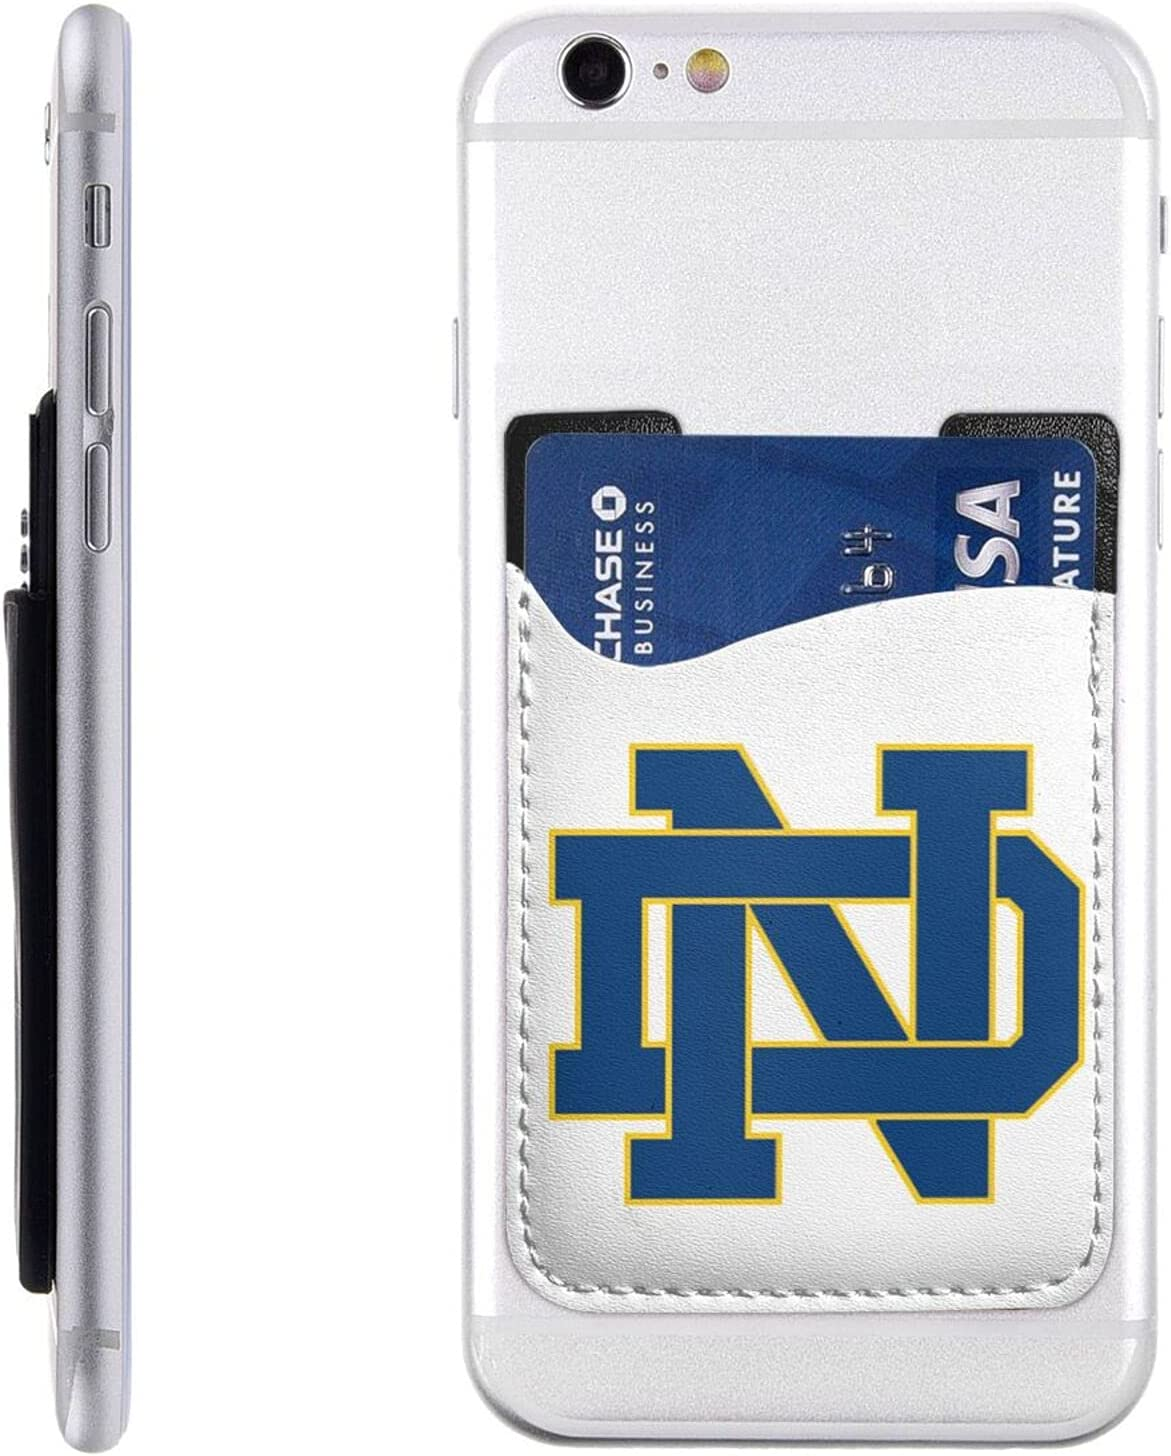 Ultra-Cheap Deals Notre Dame Fighting Irish Cell Phone Holder Id Stick-On Card Max 51% OFF Cre